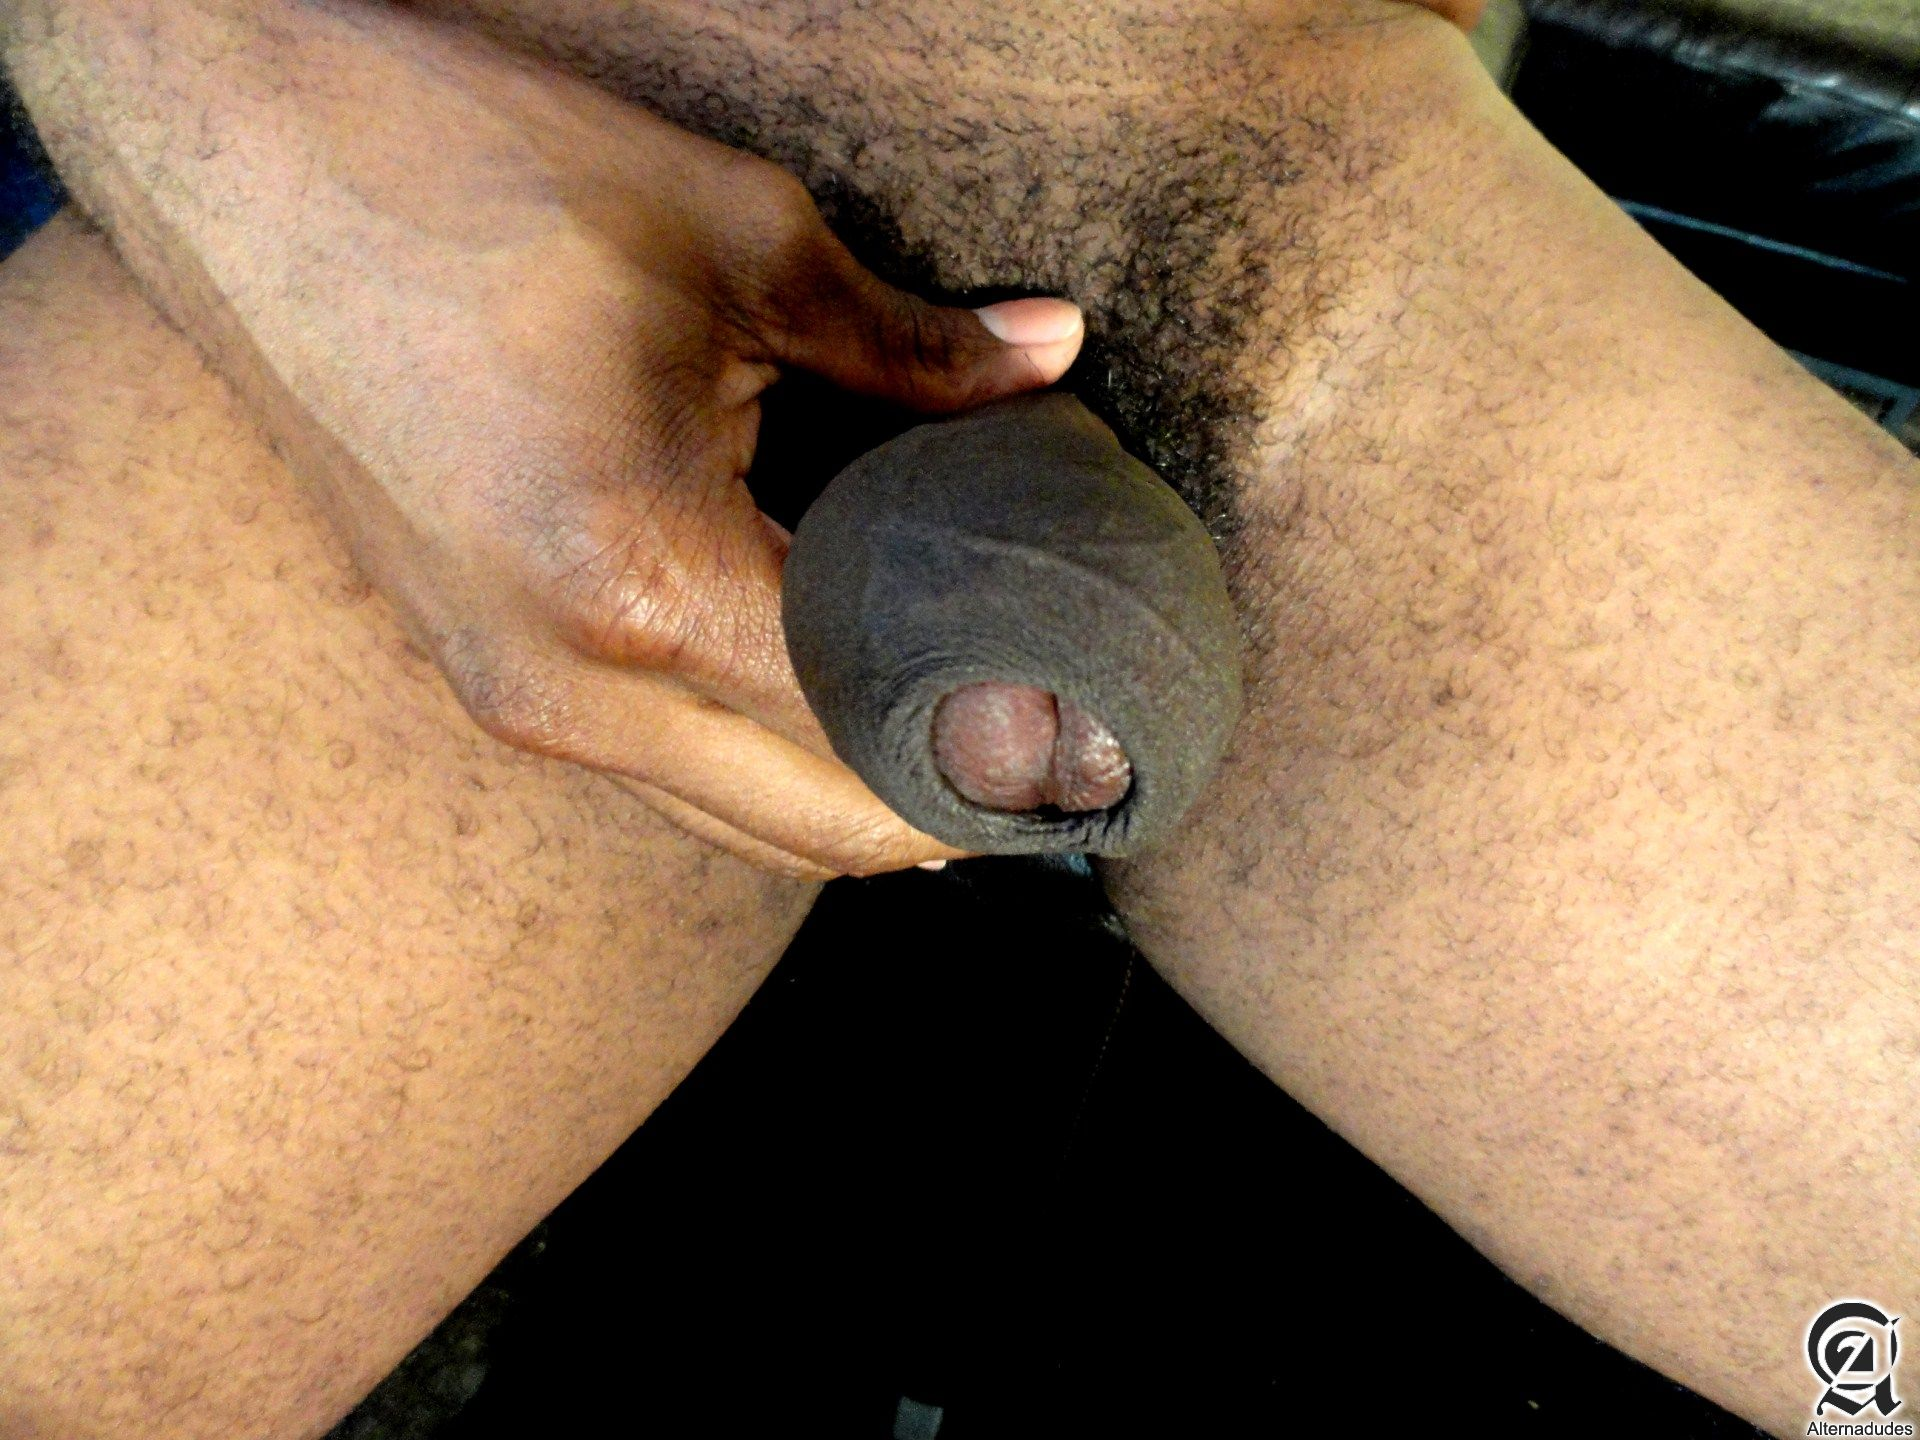 Alternadudes-Kamrun-big-black-uncut-cock-with-cum-06 Sexy Amateur Gay Black Rapper with a Huge Uncut Black Cock Shoots A Load